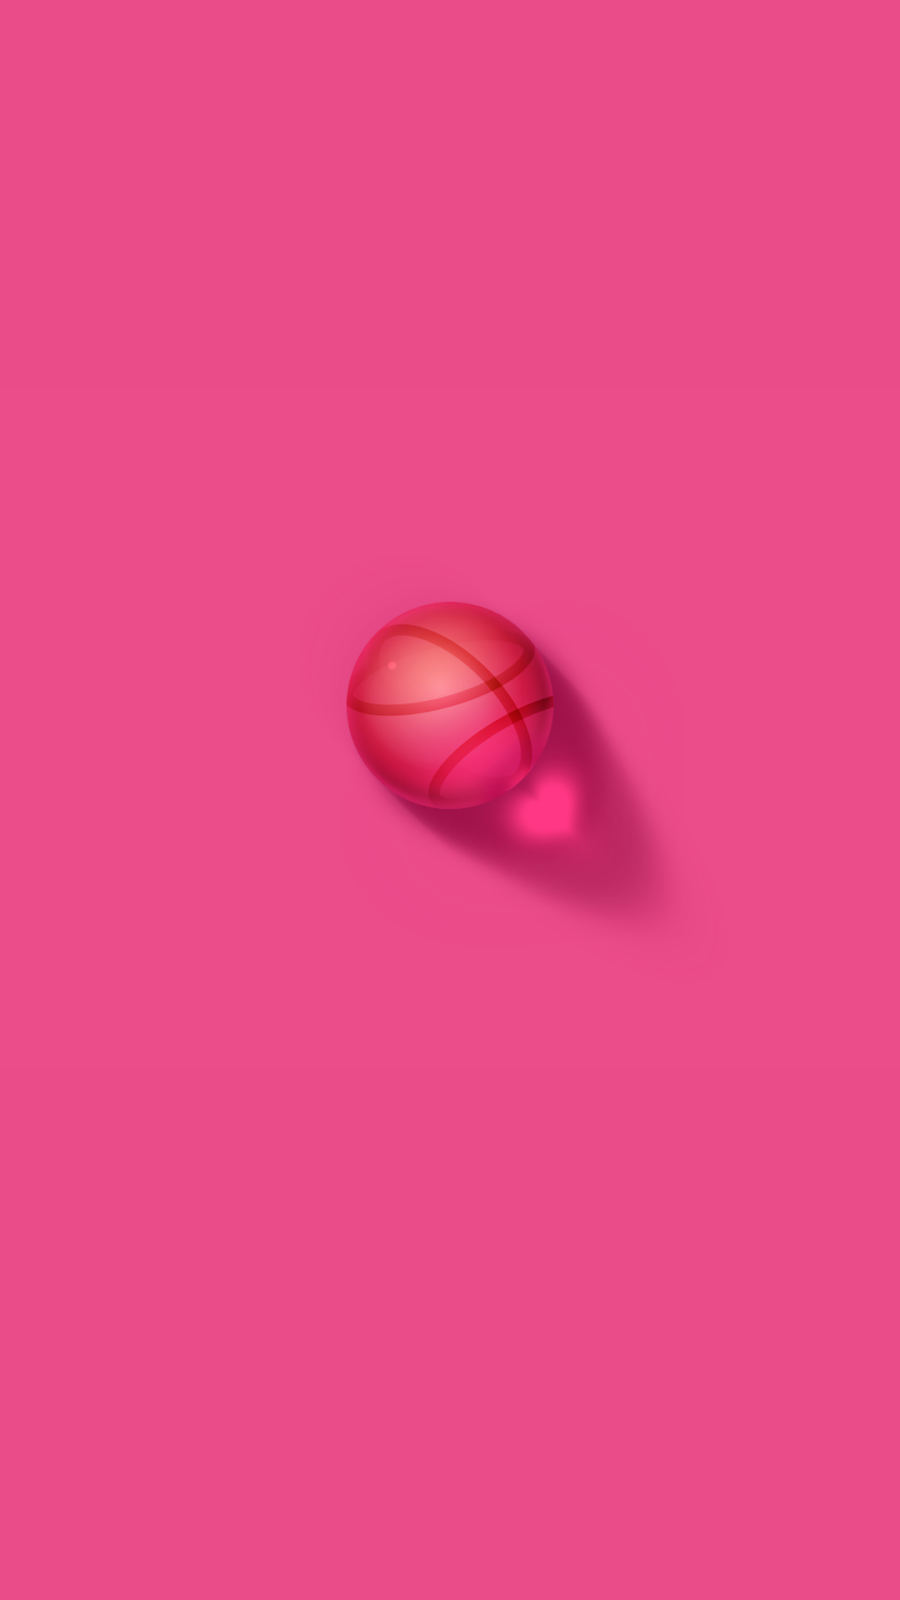 Basketball Wallpapers For Phone Heroscreen